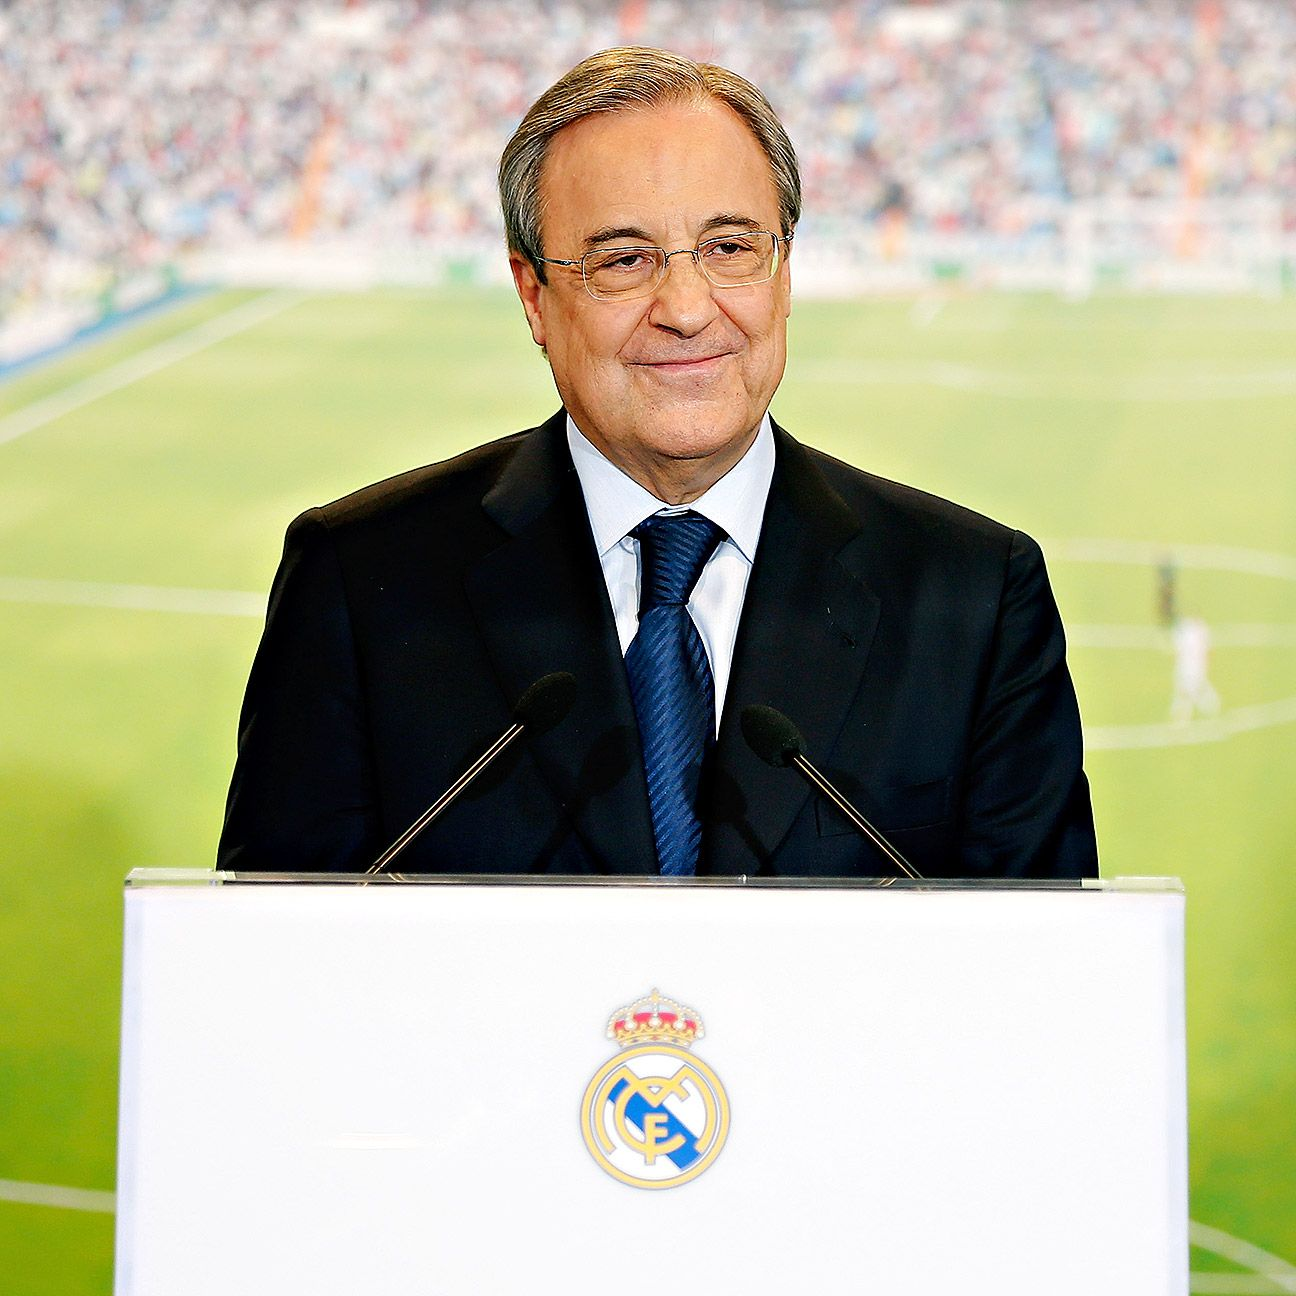 Real Madrid's transfer policy in recent seasons has differed from the <i>Galactico</i> era seen under Florentino Perez in the early stages of his two terms.